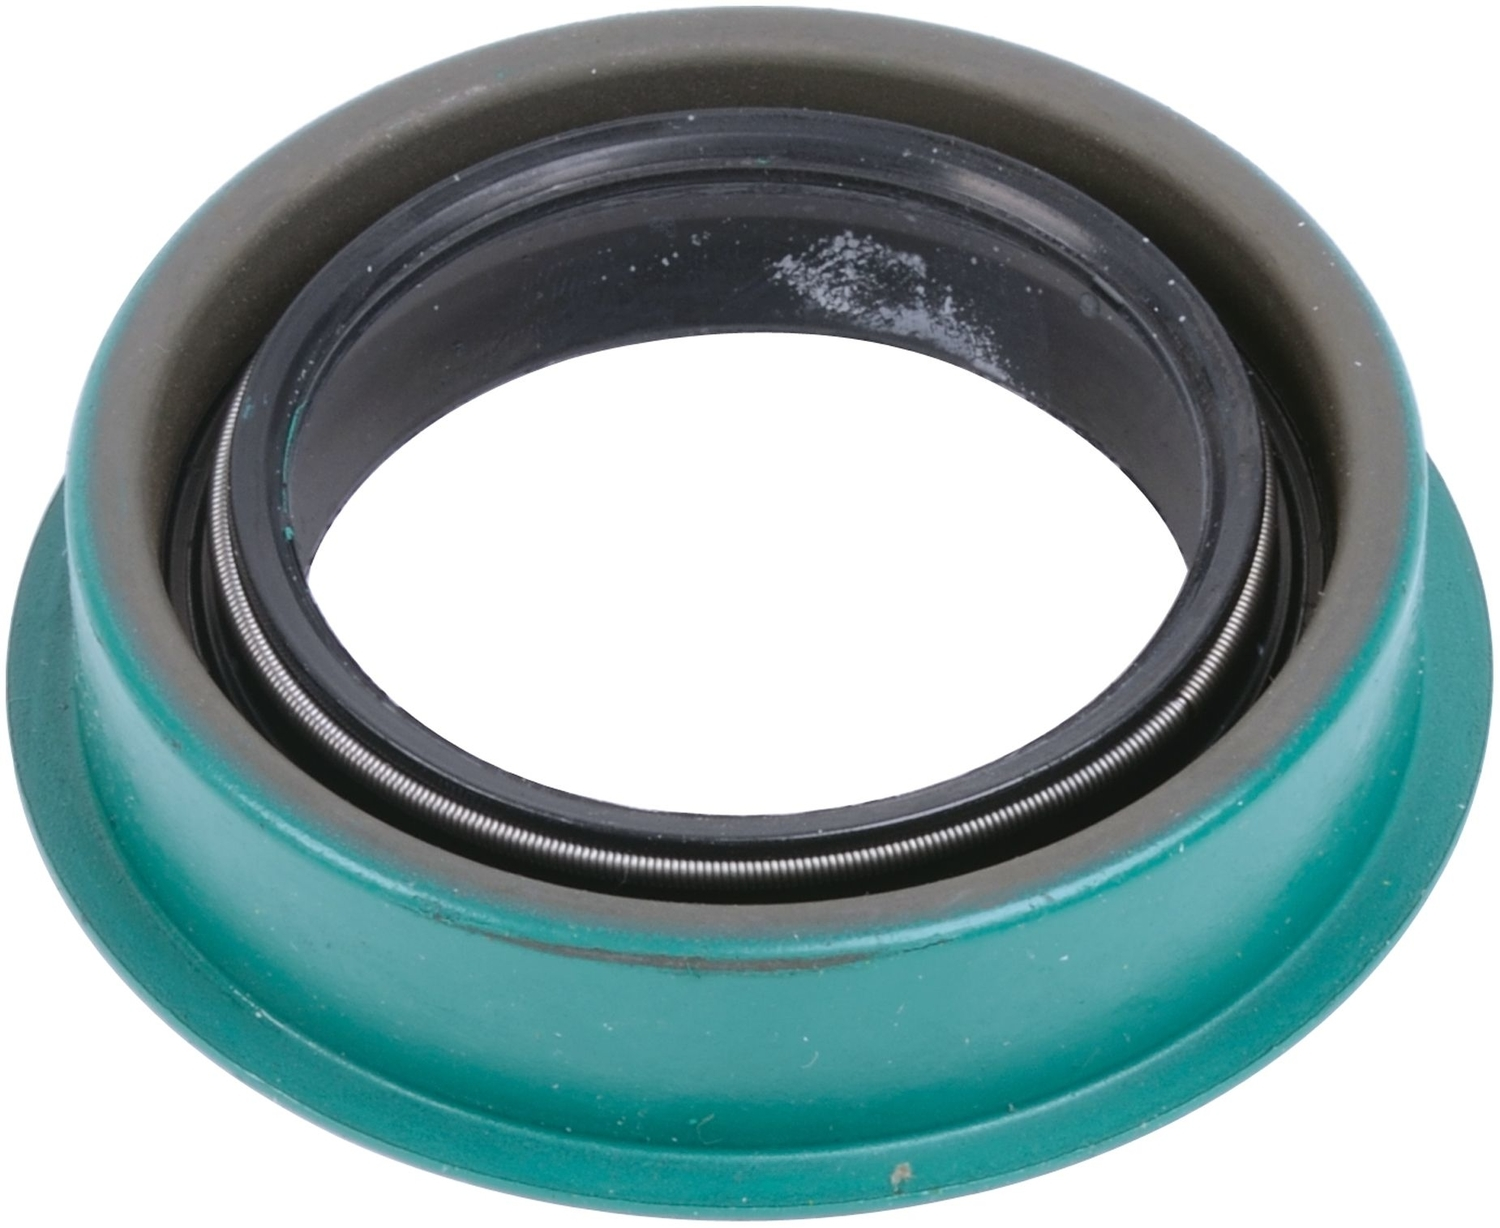 SKF (CHICAGO RAWHIDE) - Manual Trans Output Shaft Seal - SKF 18992